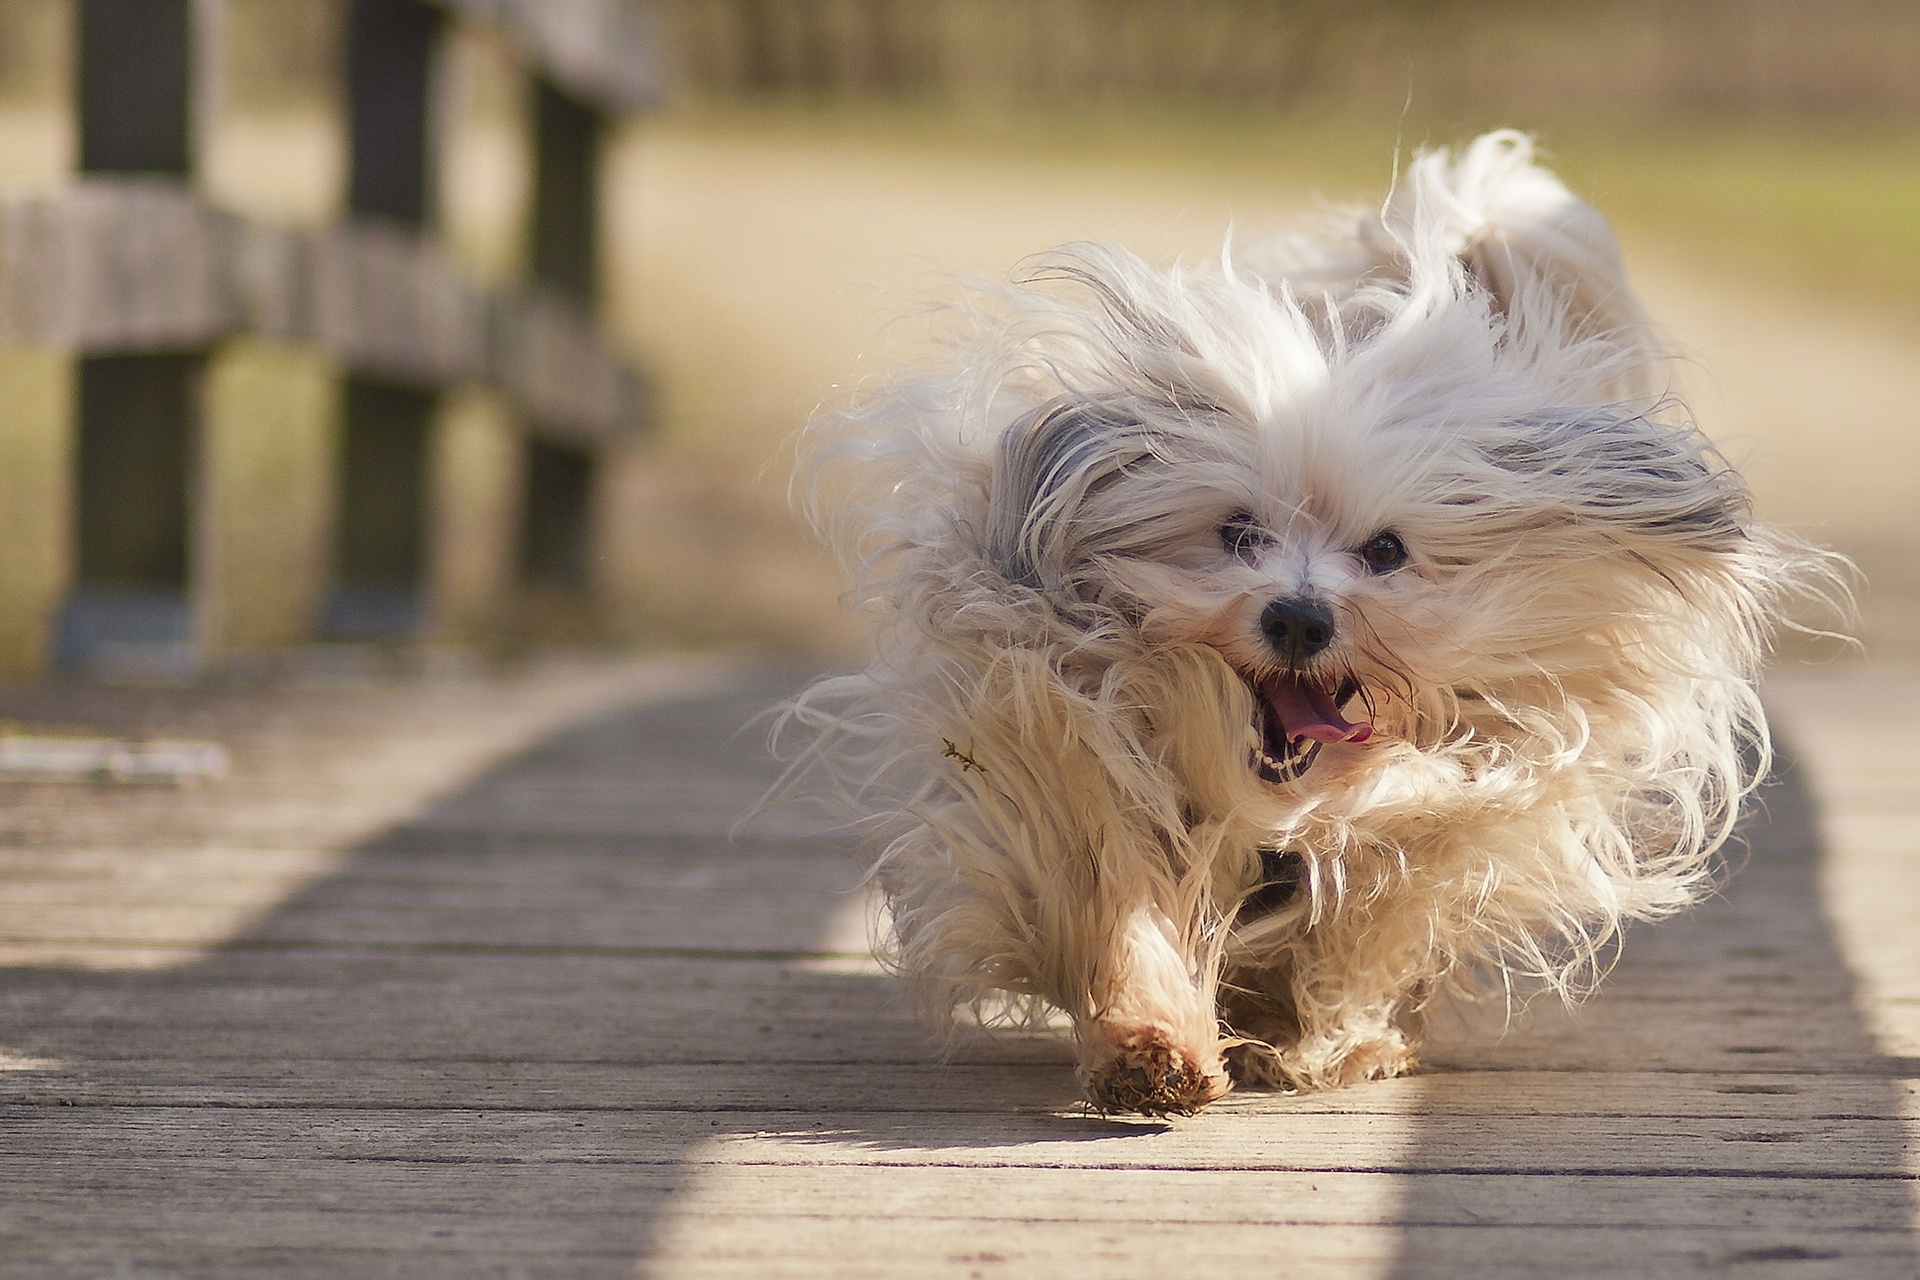 133761 Screensavers and Wallpapers Fluffy for phone. Download Animals, Fluffy, Dog, Run Away, Run pictures for free